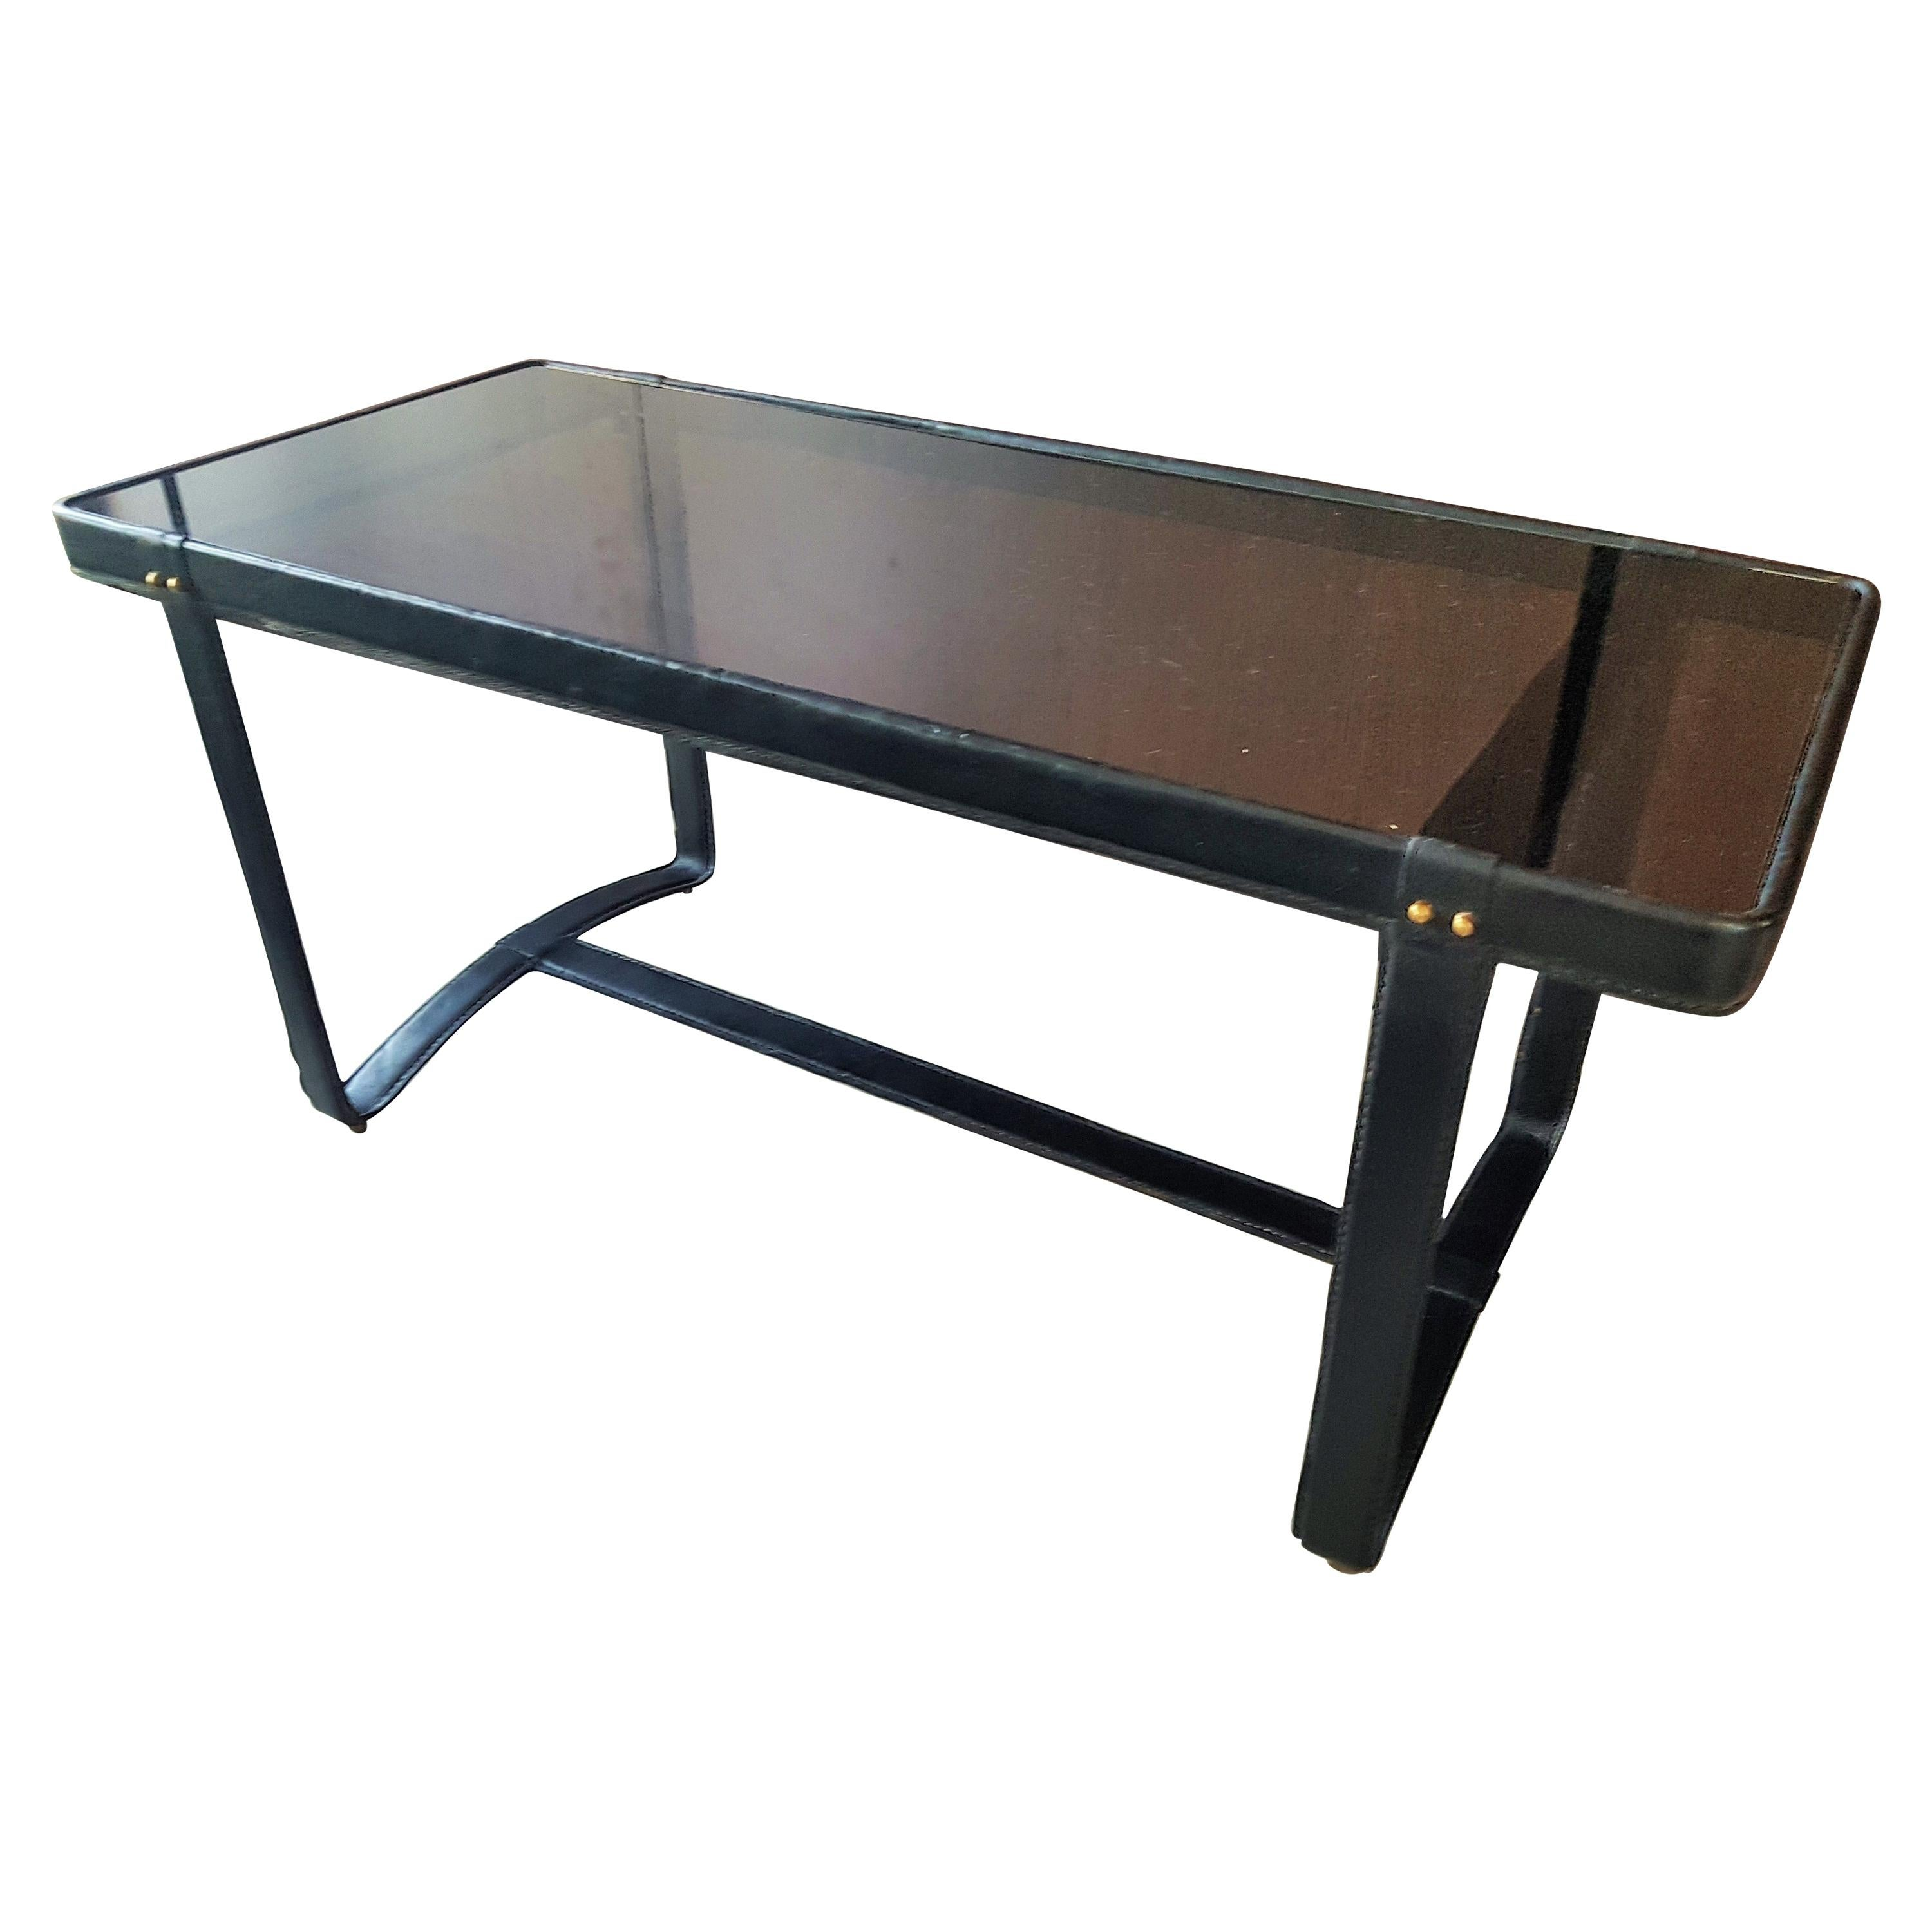 Midcentury Leather Coffee Table by Jacques Adnet, France, 1950